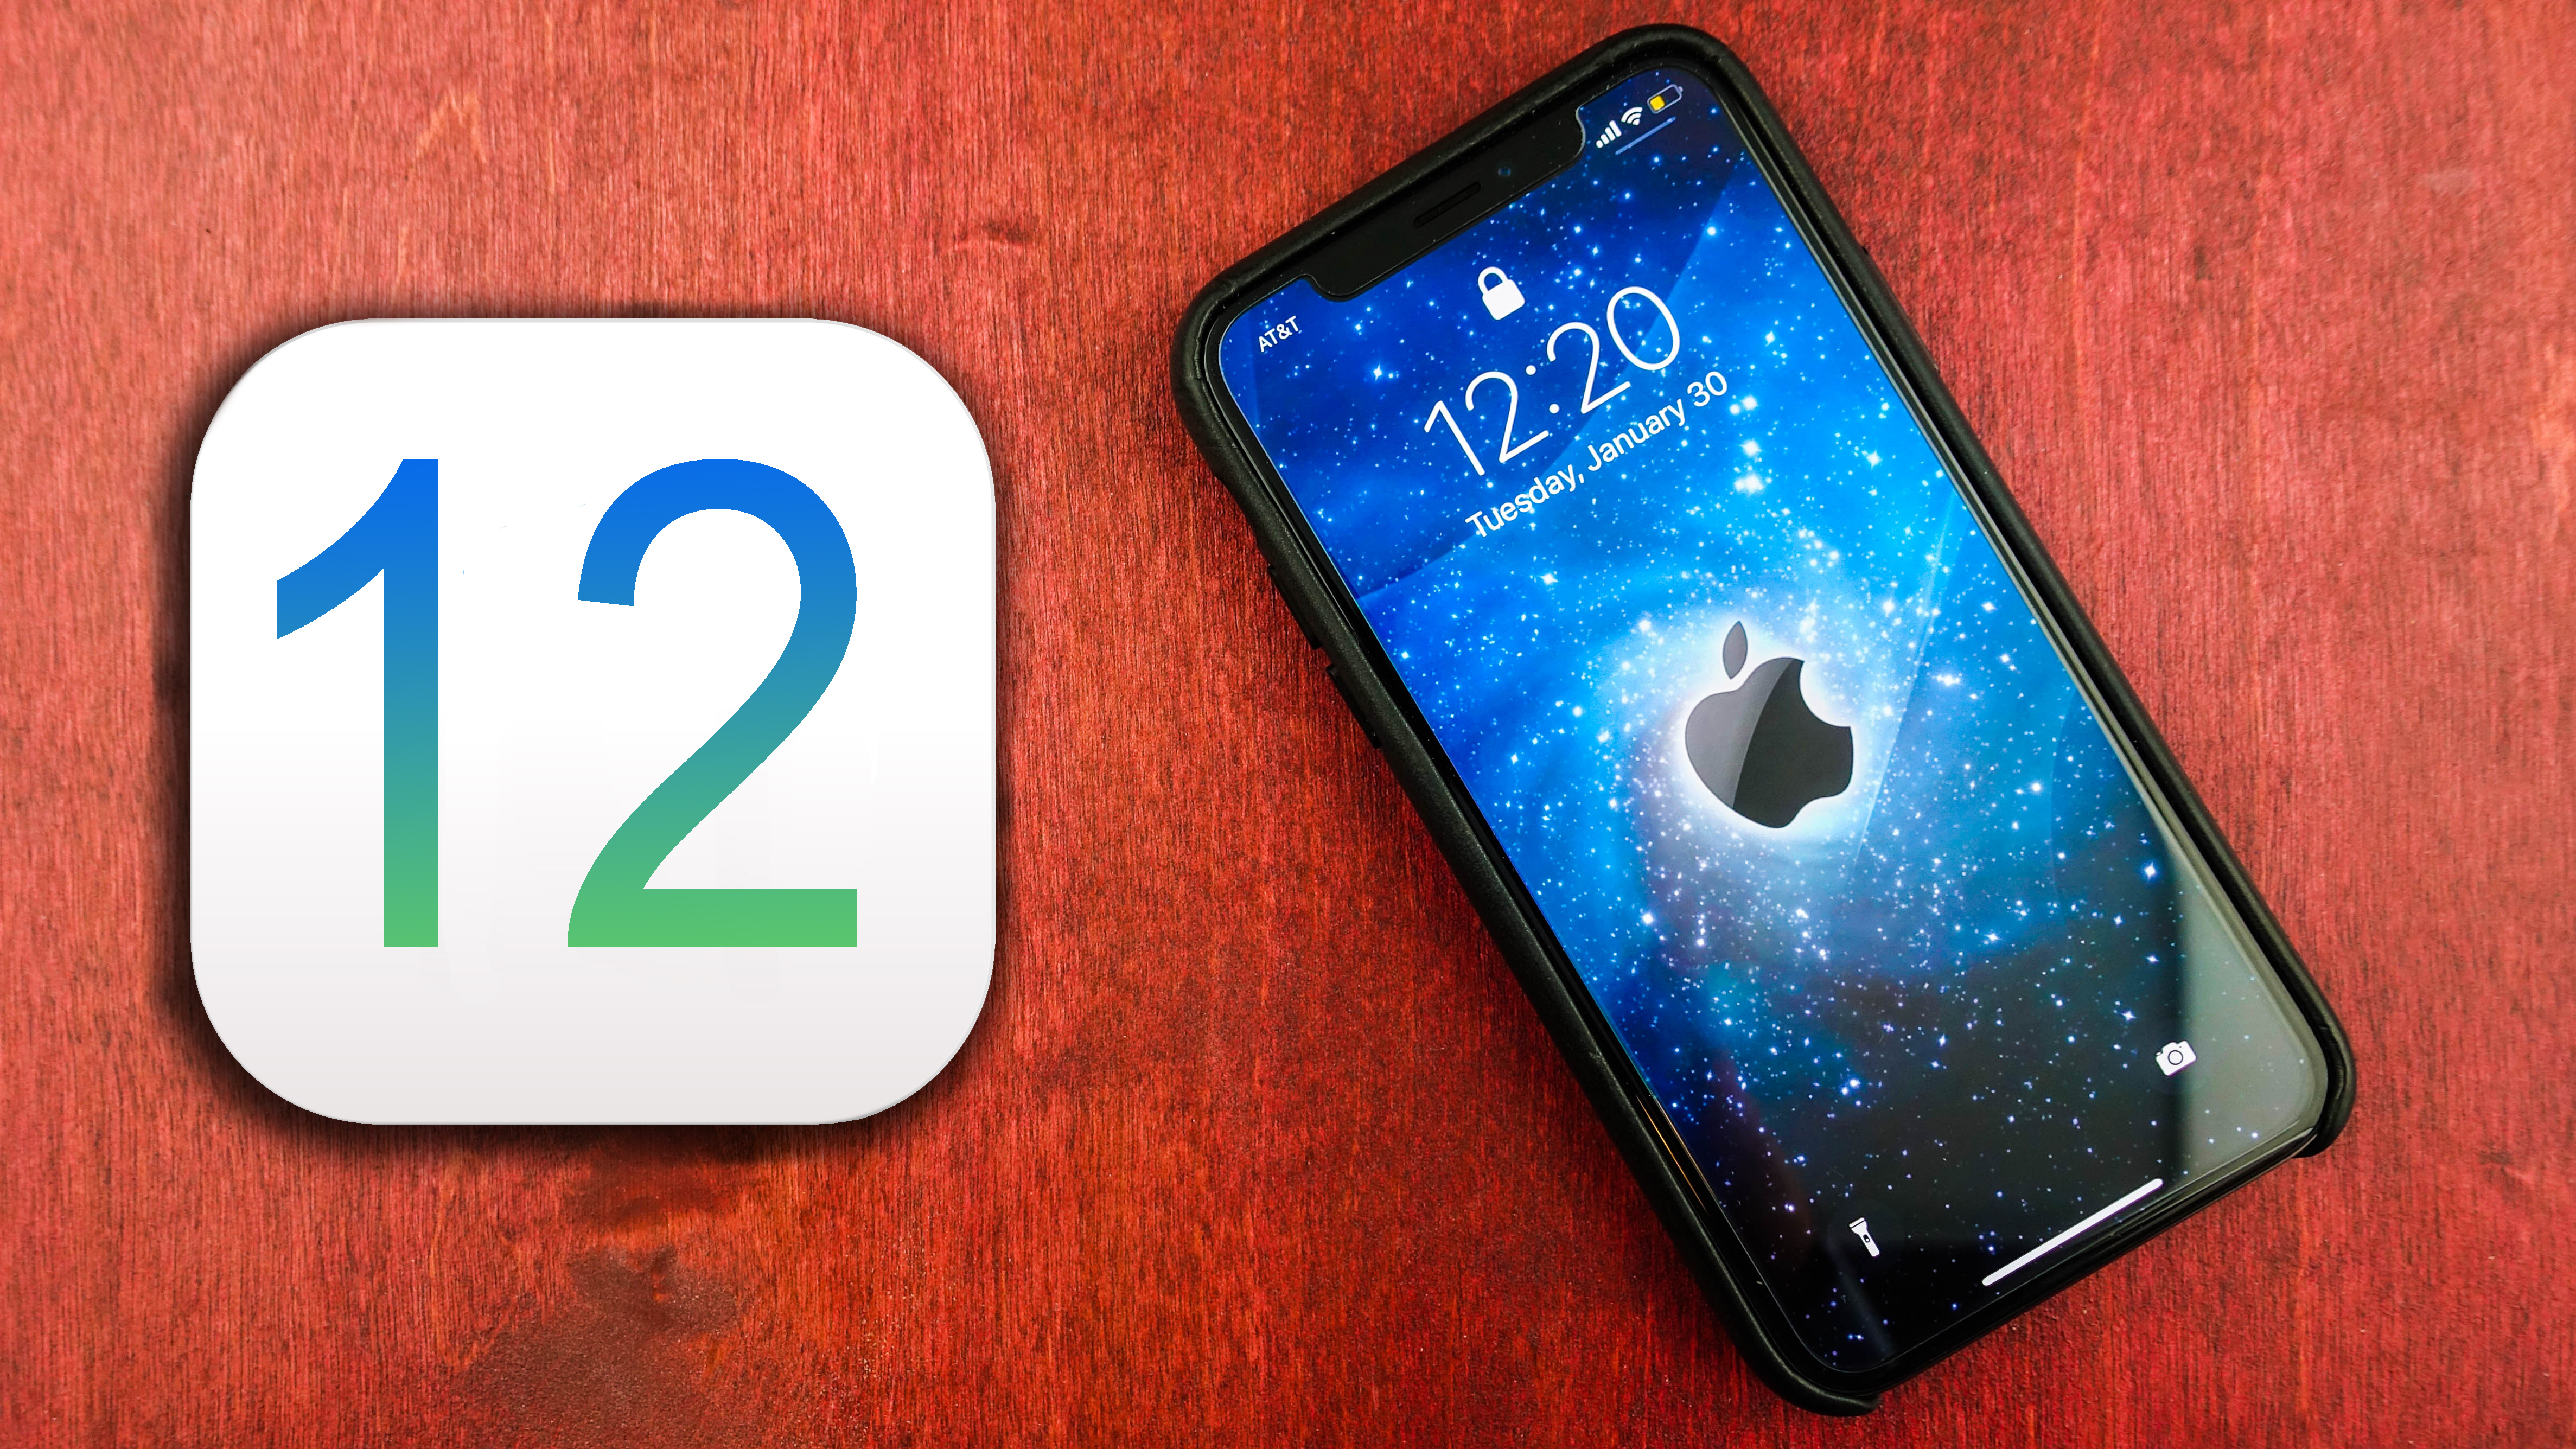 New Features Coming With iOS 12